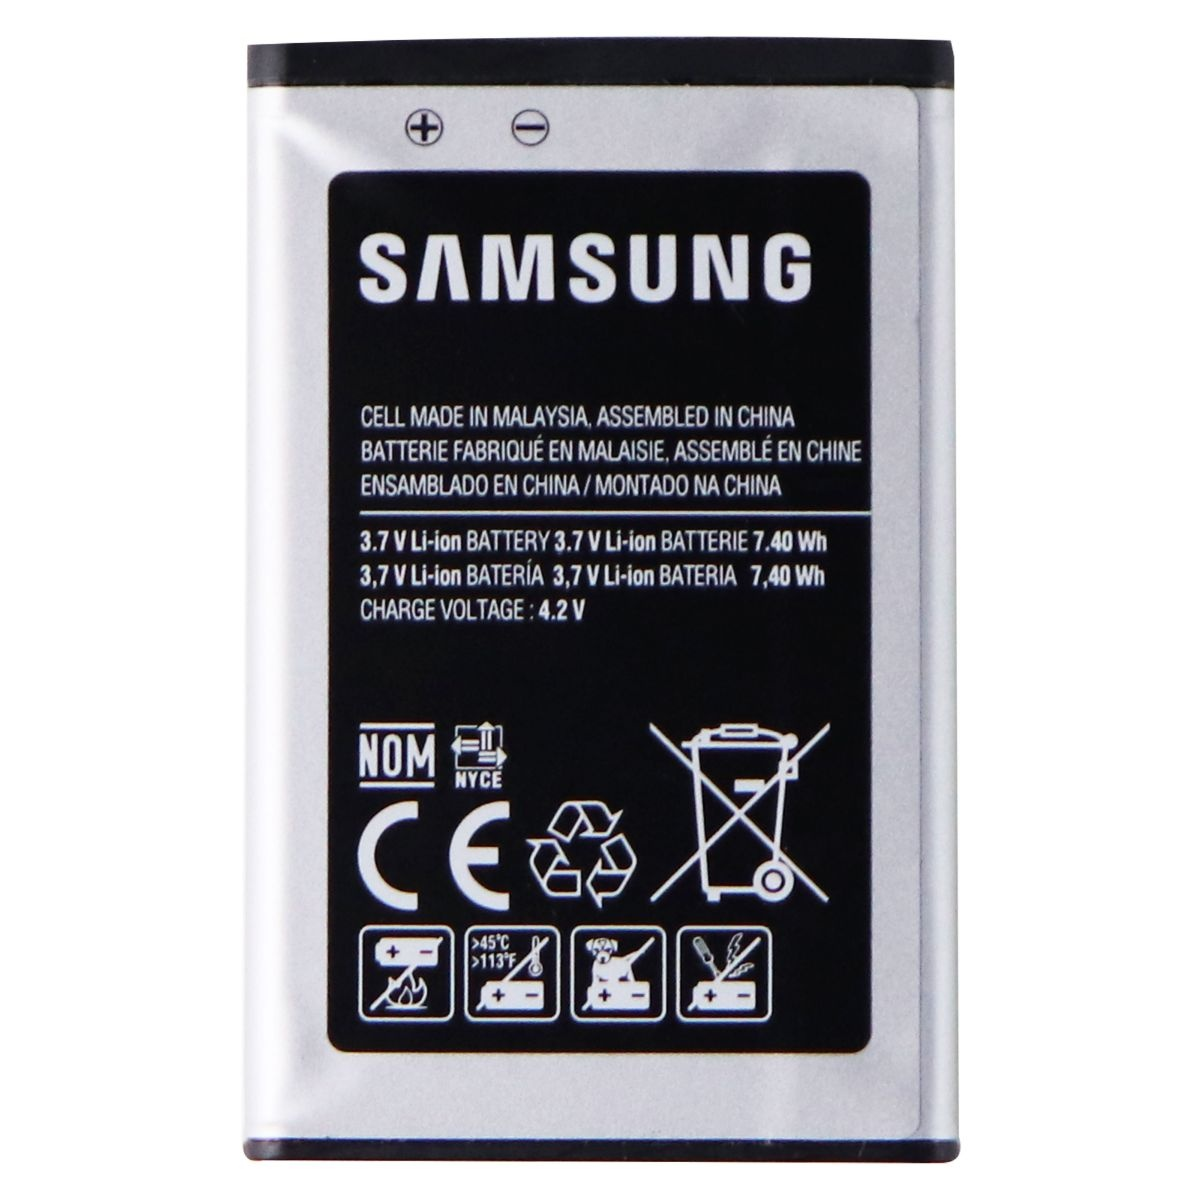 Samsung Rechargeable 2,000mAh (EB-BG780CBU) Battery for Samsung Rugby 4